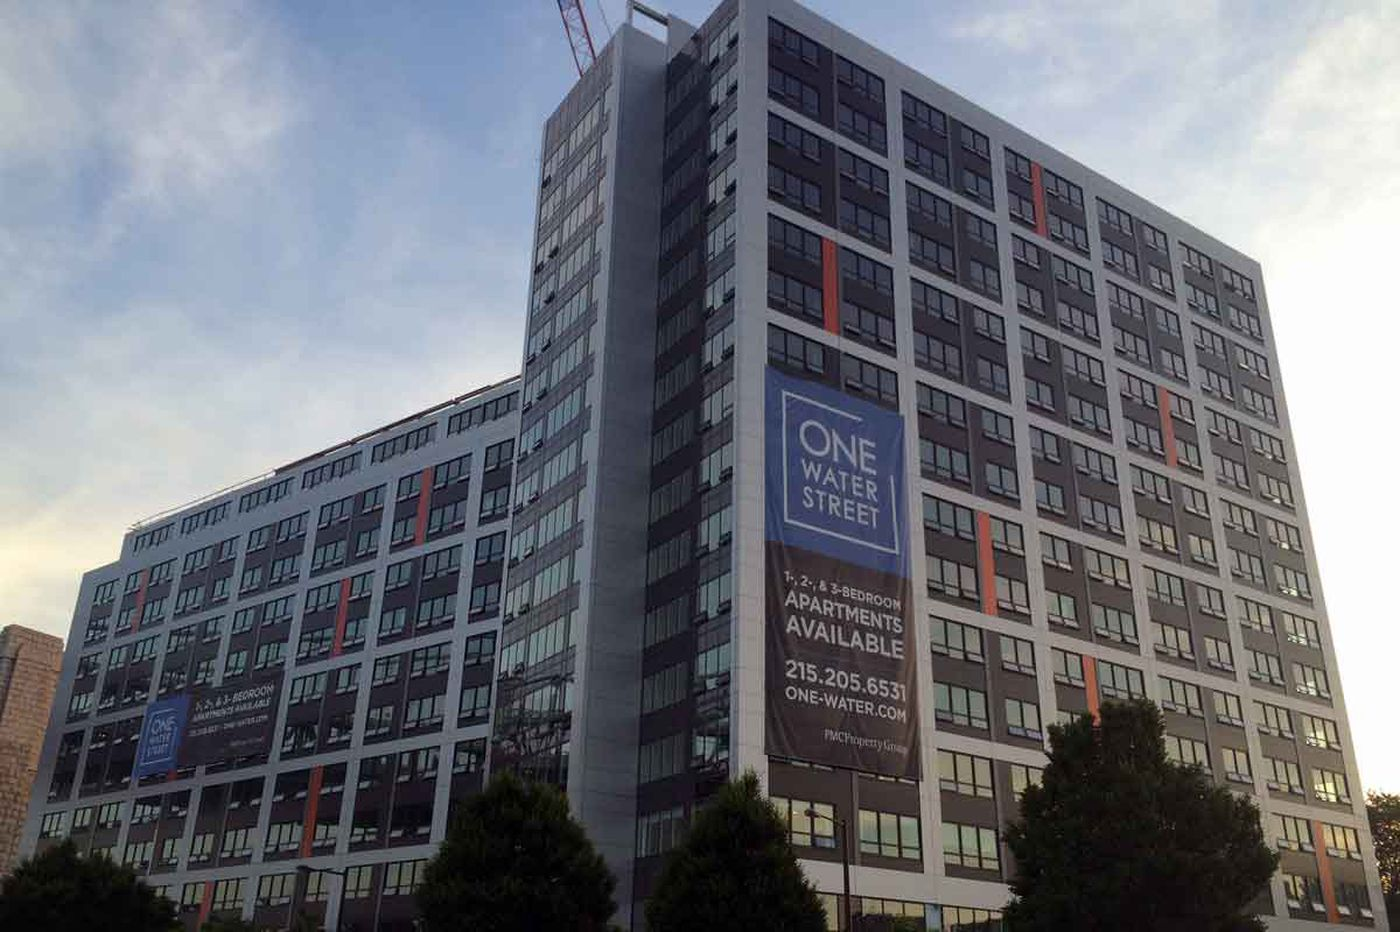 Changing Skyline: One Water St.: Instead of subsidized units, how about retail and art?